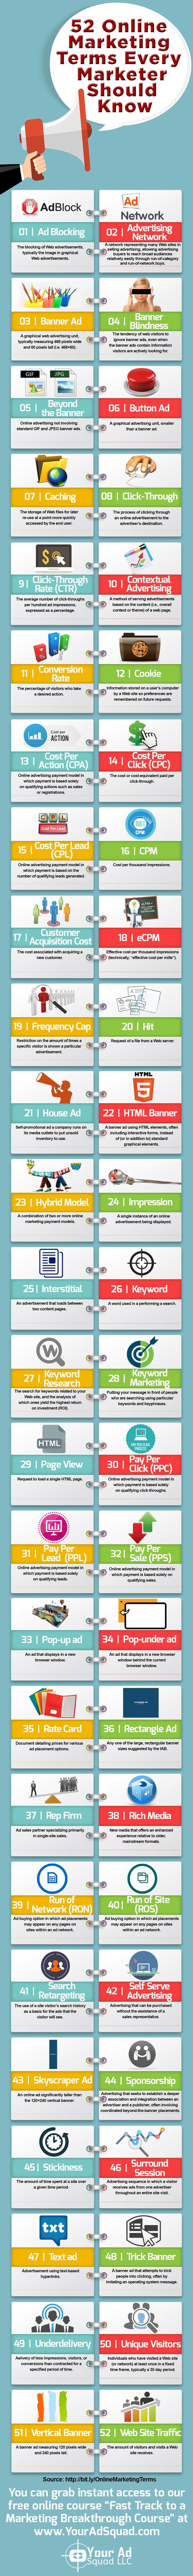 52 Online #Marketing Terms Every Marketer Should Know - YourAdSquad.com 00000Continue Reading →: